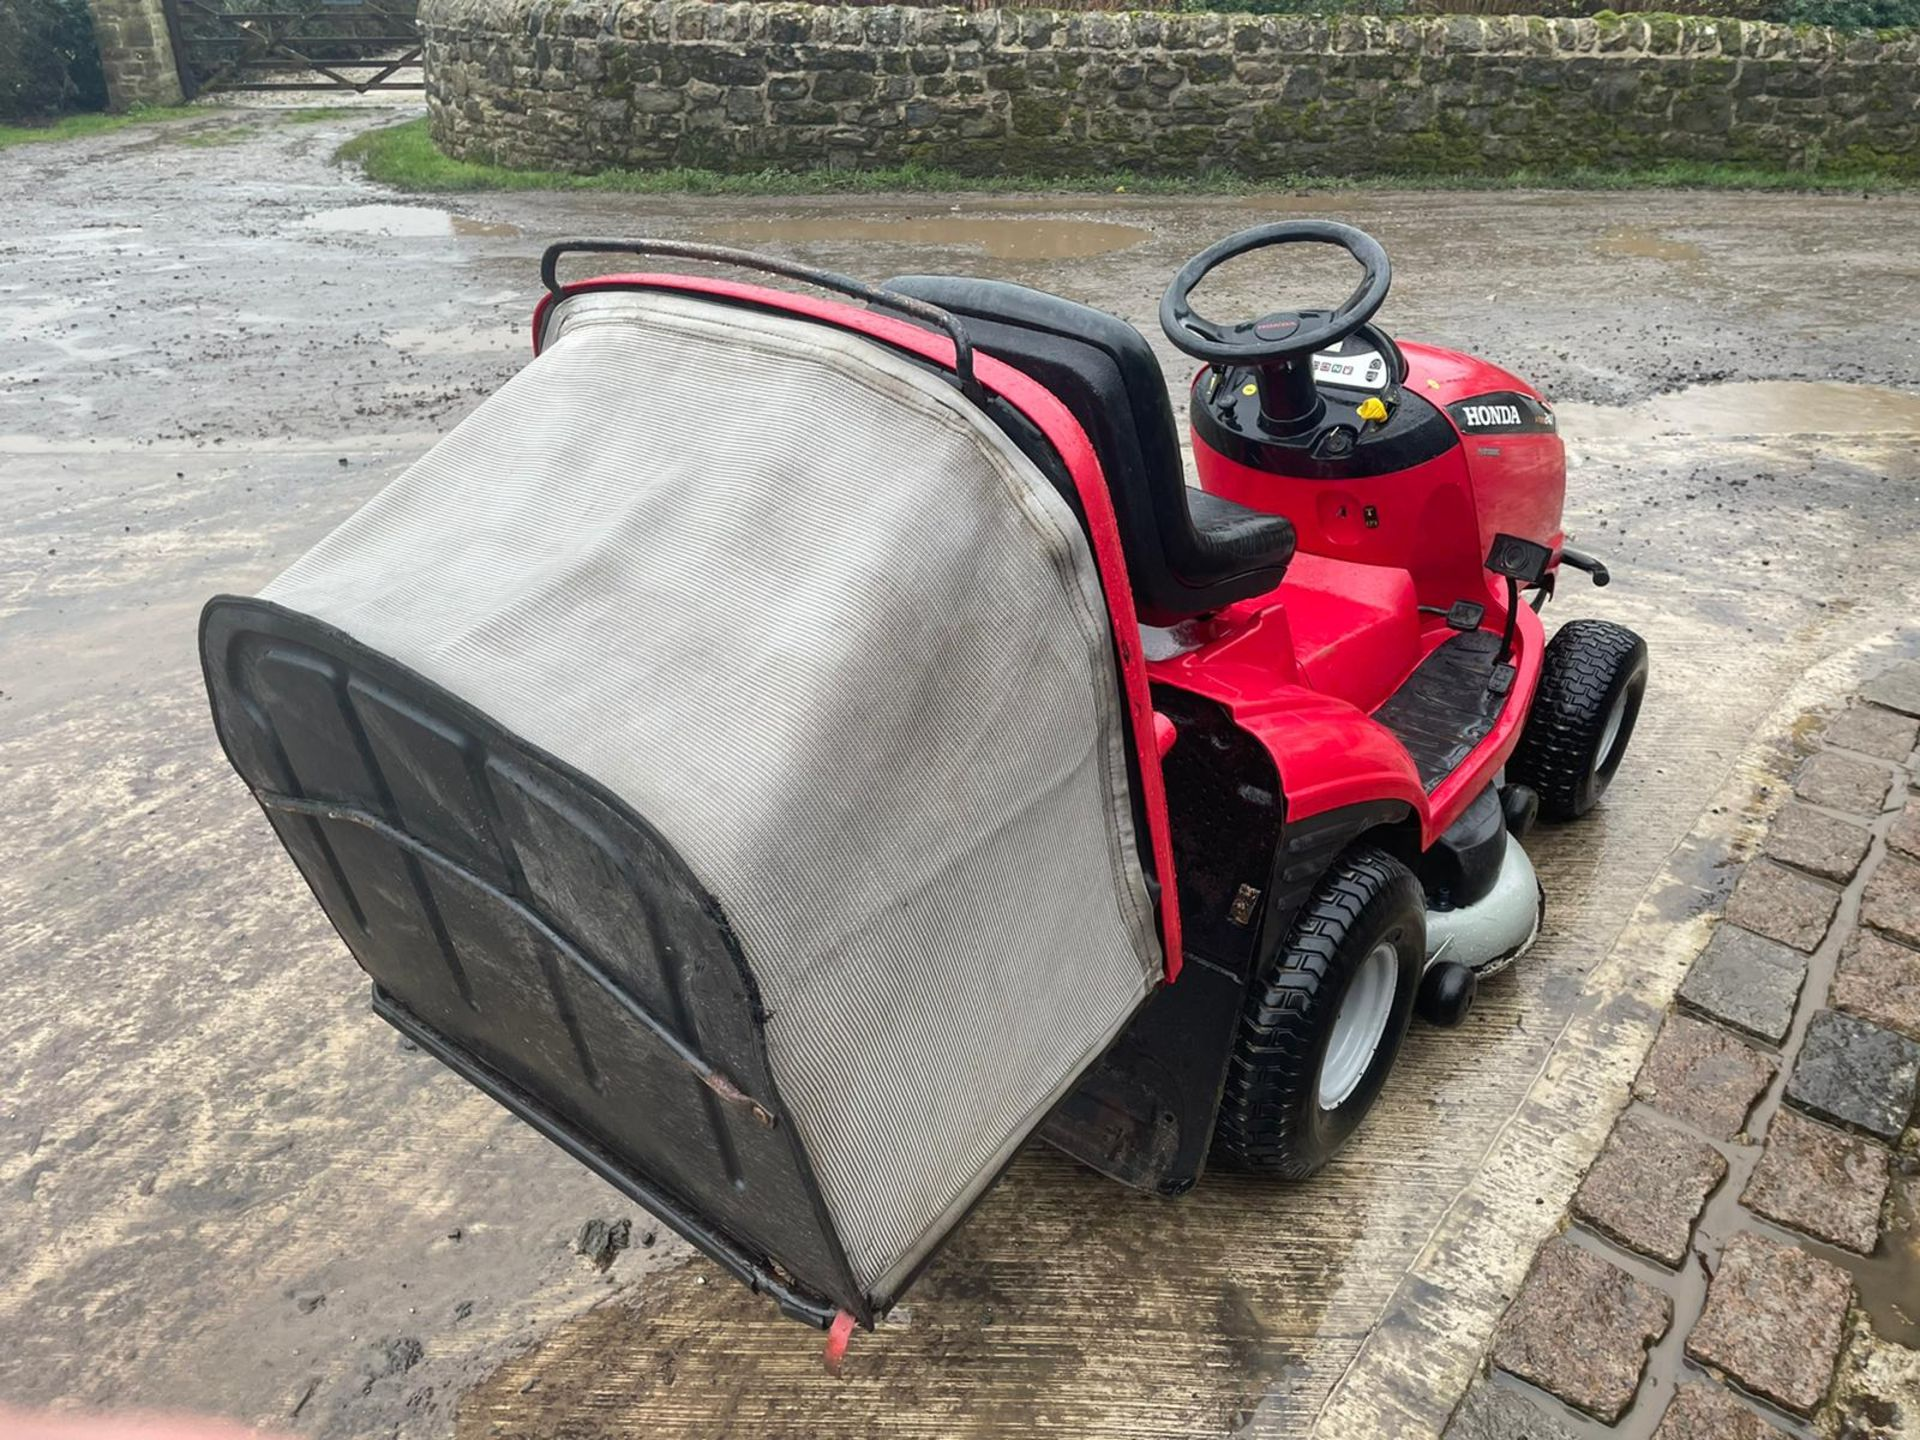 HONDA 2417 V TWIN RIDE ON MOWER, RUNS, DRIVES AND CUTS, ELECTRIC COLLECTOR, CLEAN MACHINE *NO VAT* - Image 4 of 5